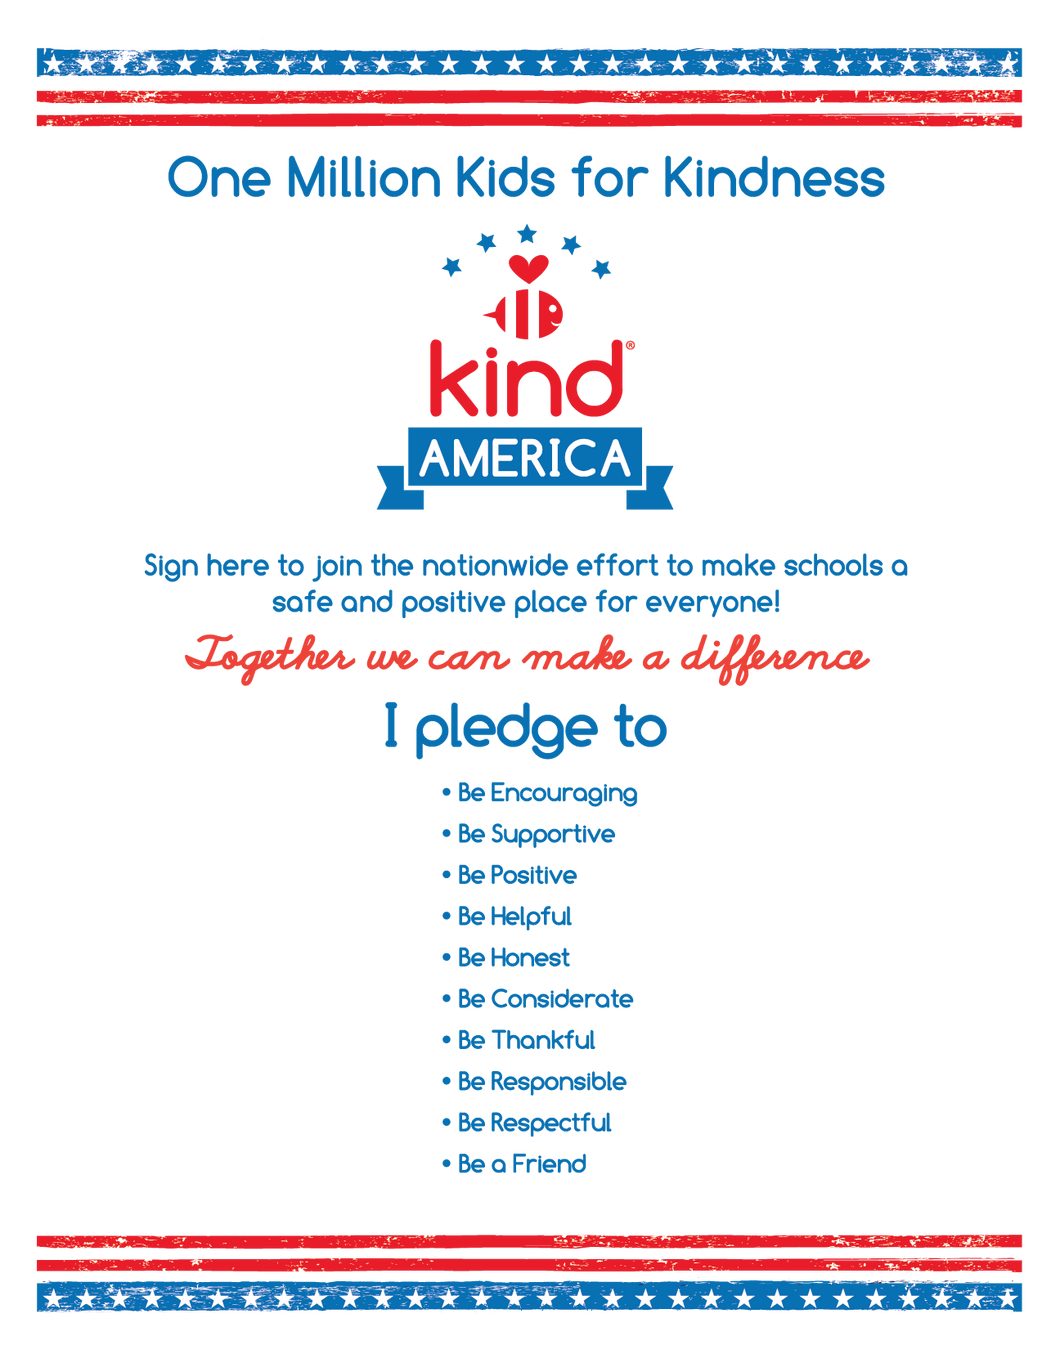 Be Kind America Kid's Poster ($3.50)